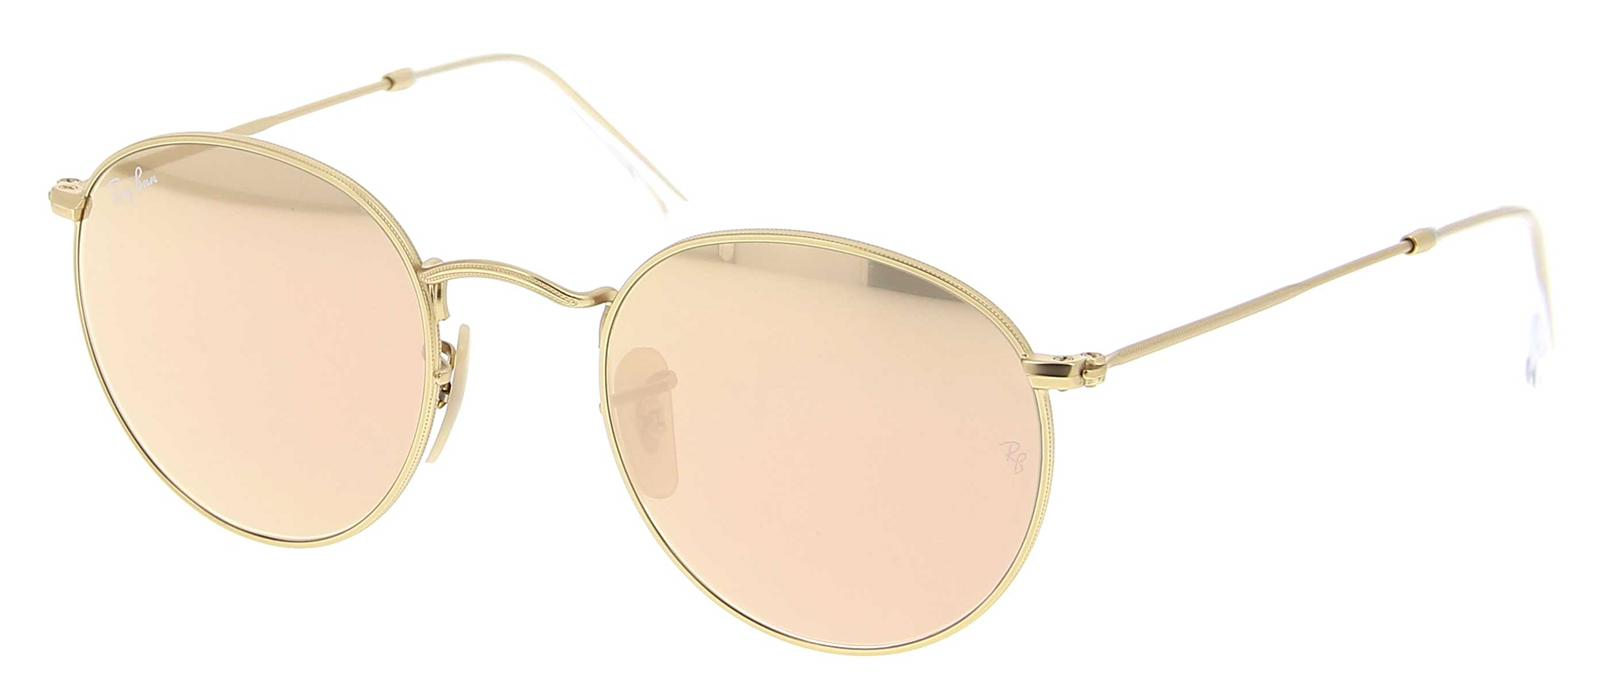 many styles shades of wholesale online Lunettes de soleil ray ban authentiques Destockage Grossiste